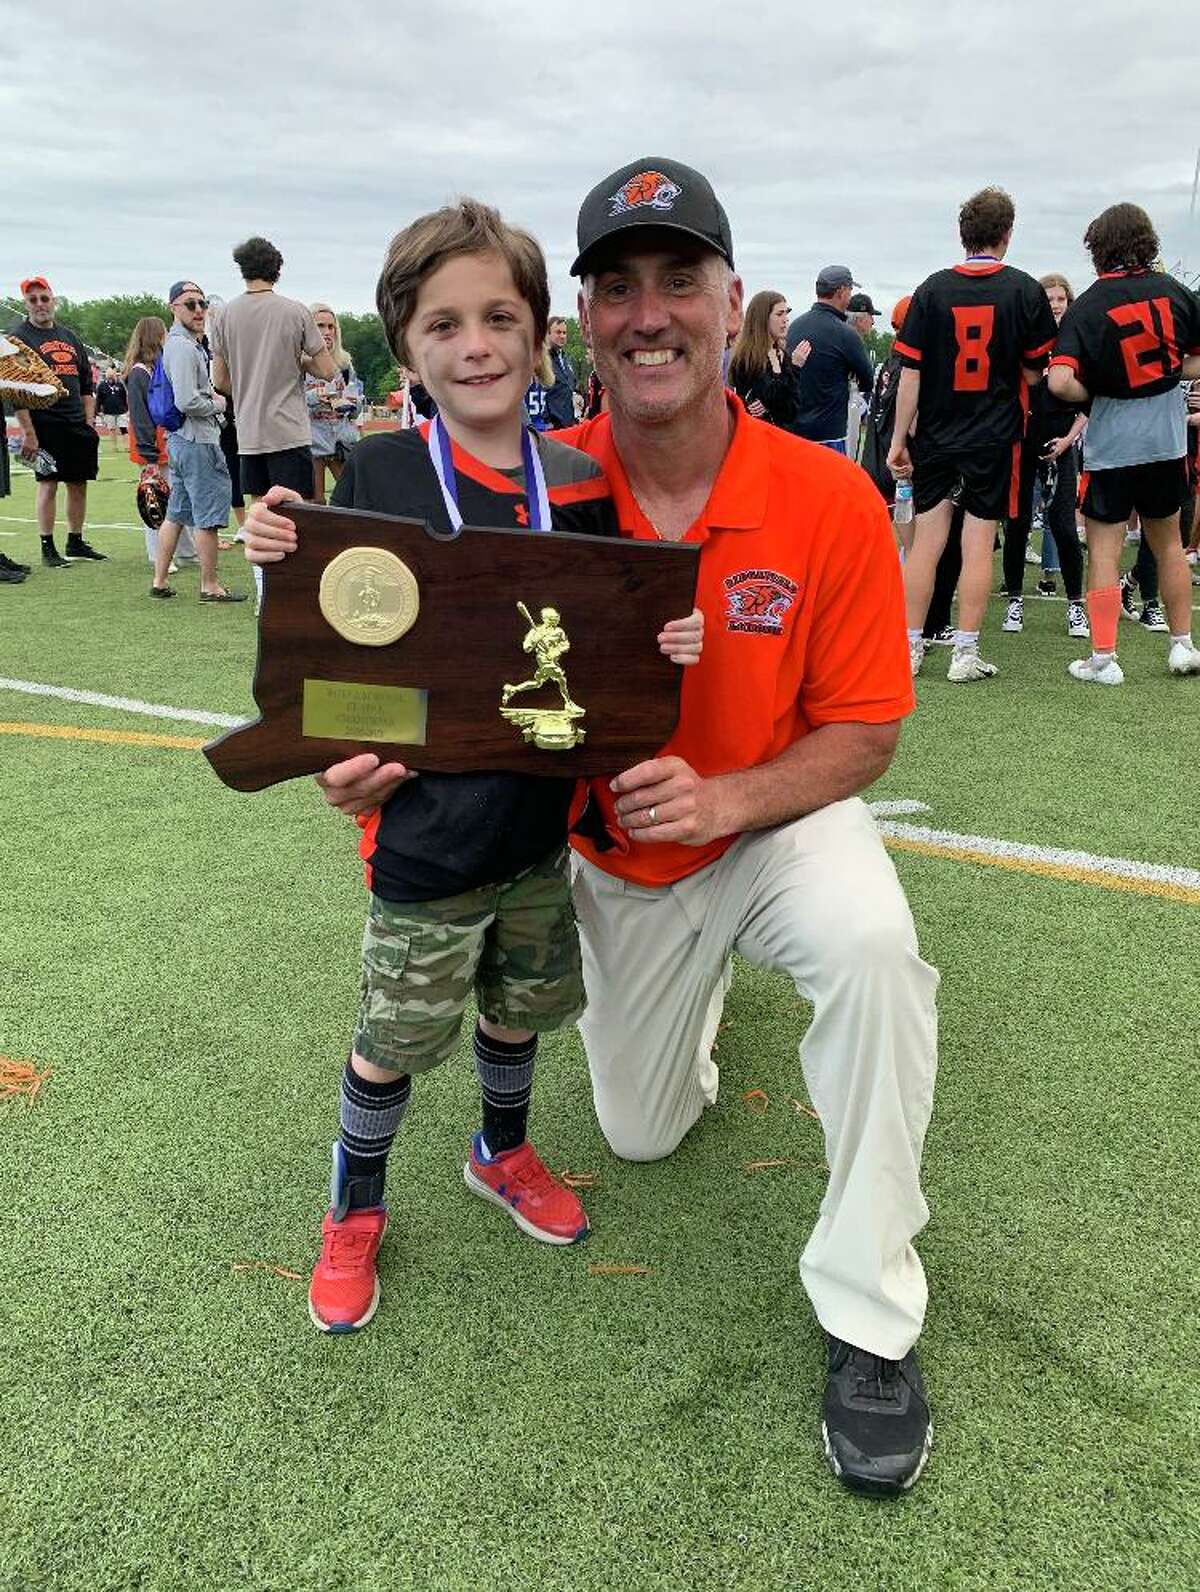 Conner Curran holds the state championship plaque alongside head lacrosse coach Roy Colsey.